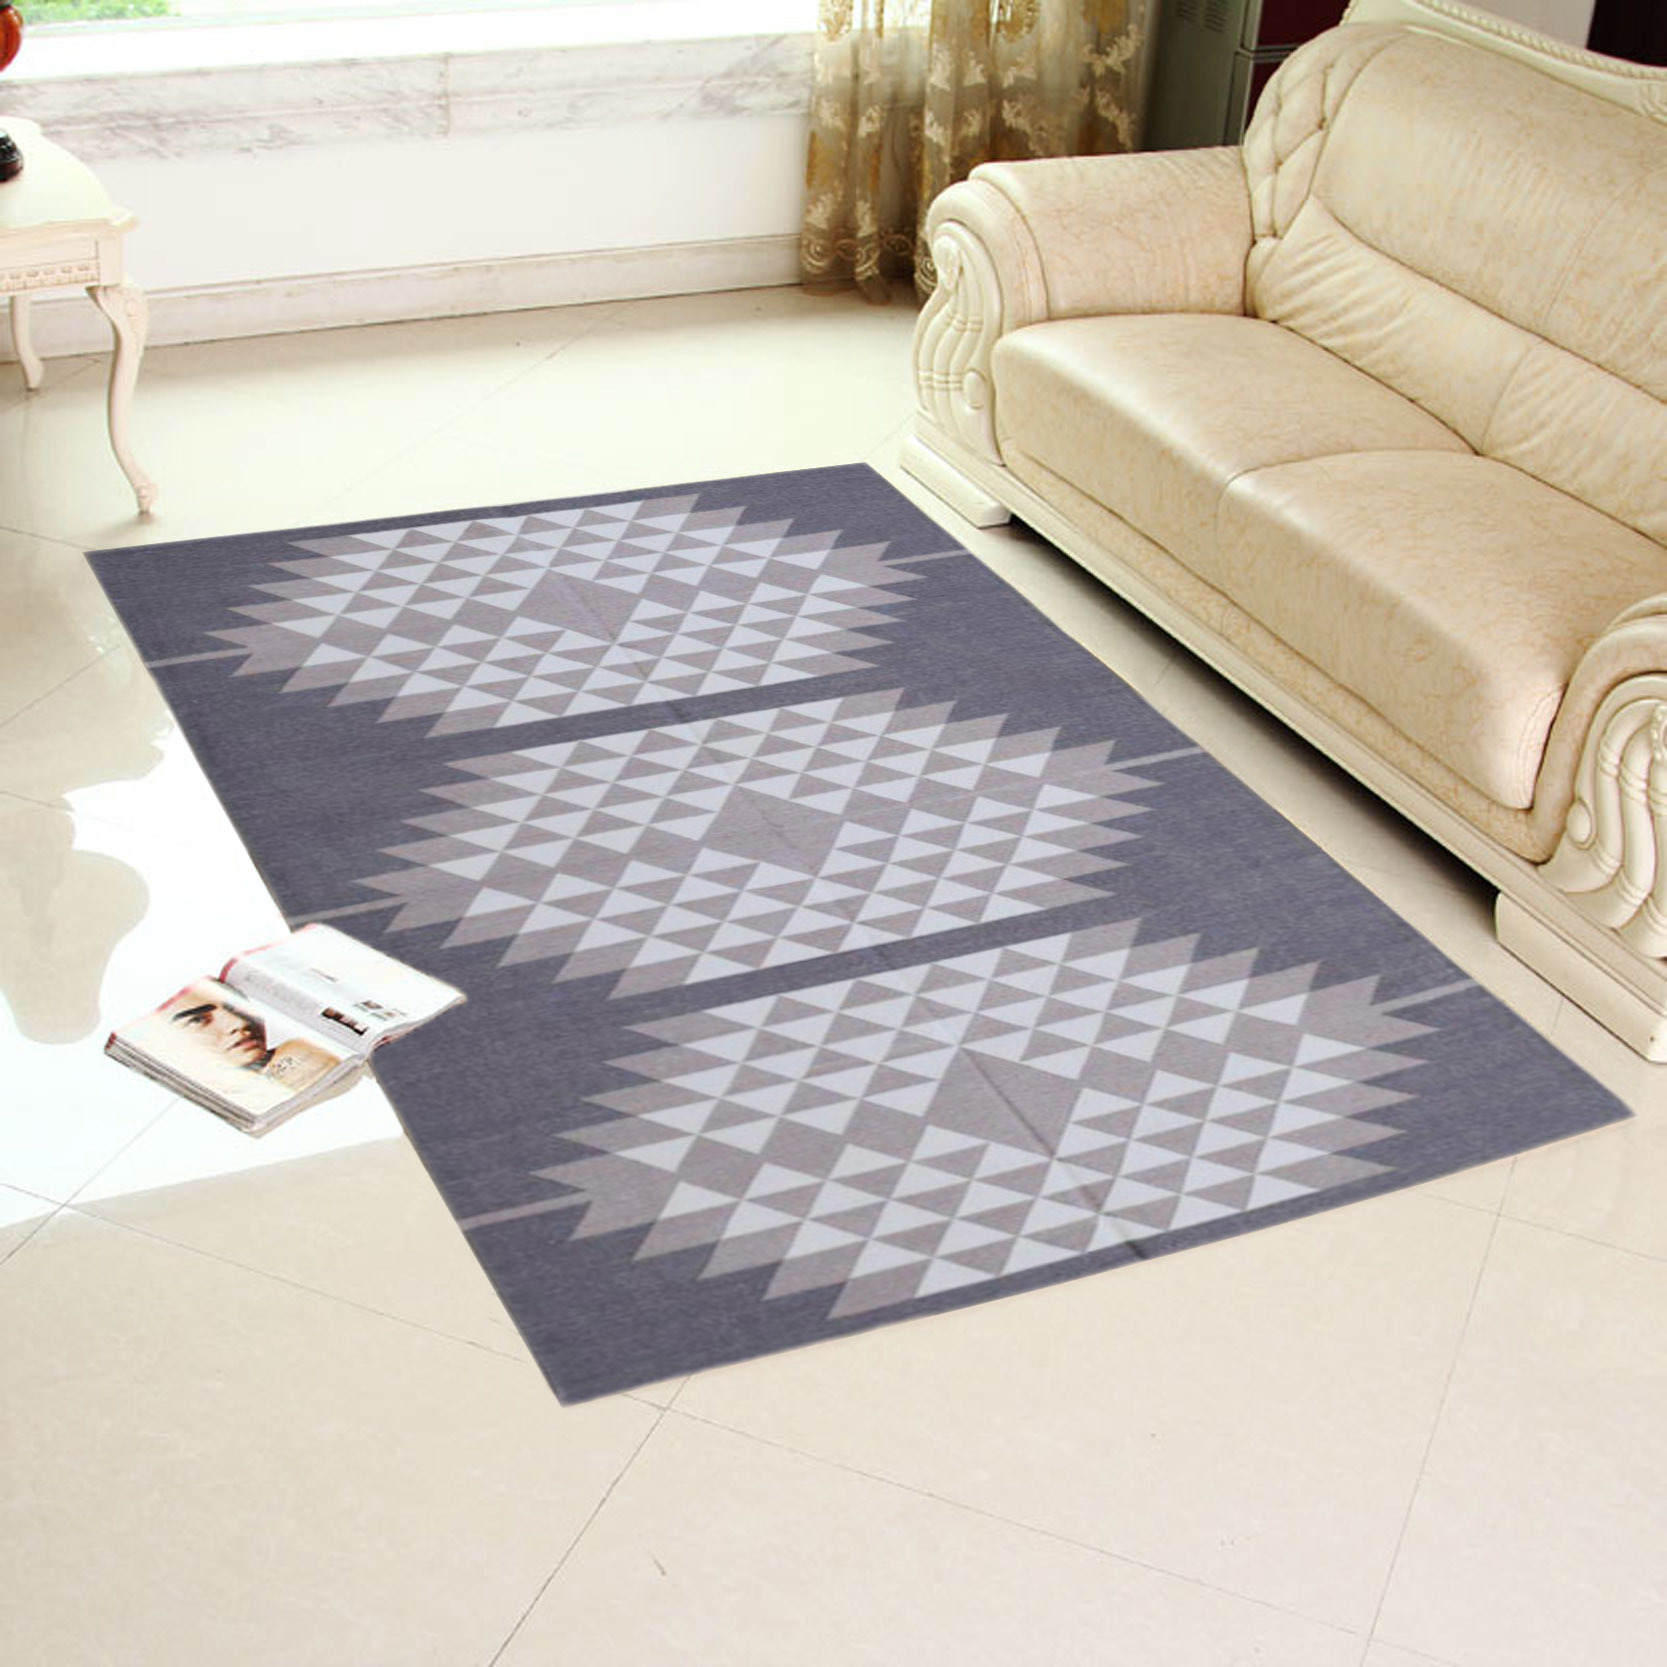 Cotton Flat Weave Carpet